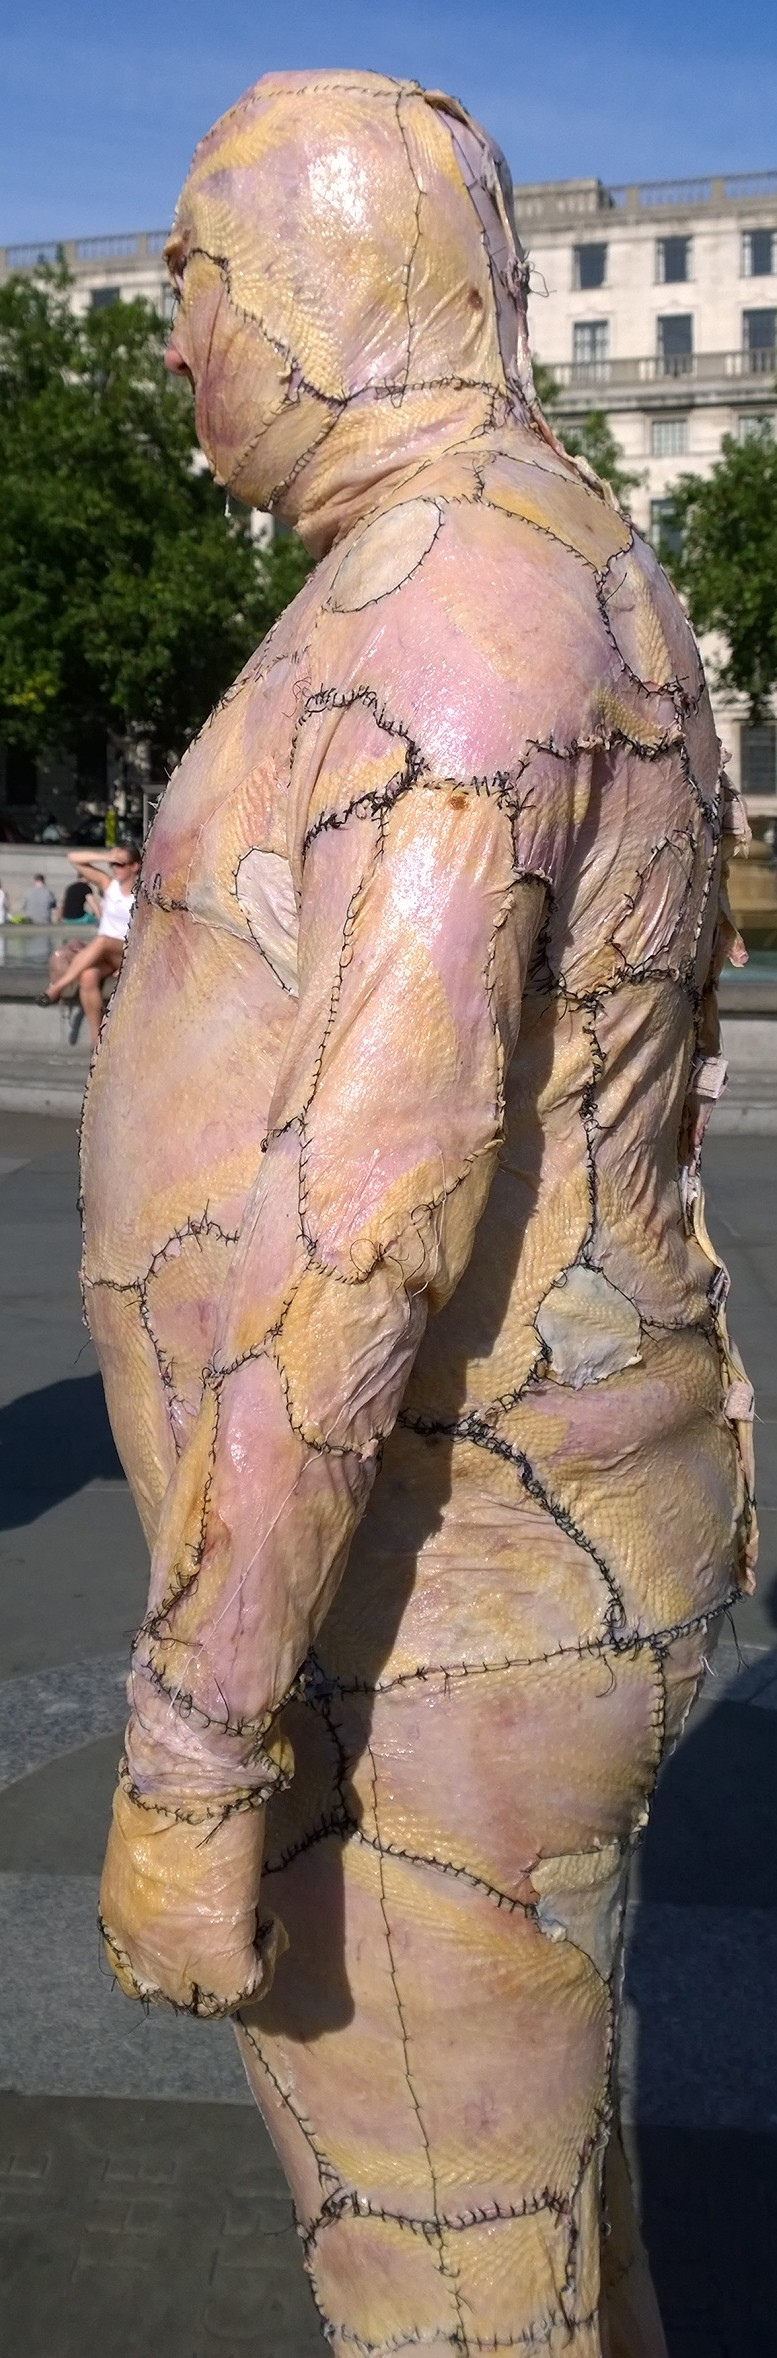 man dresses in a suit made of real chicken skin and walks